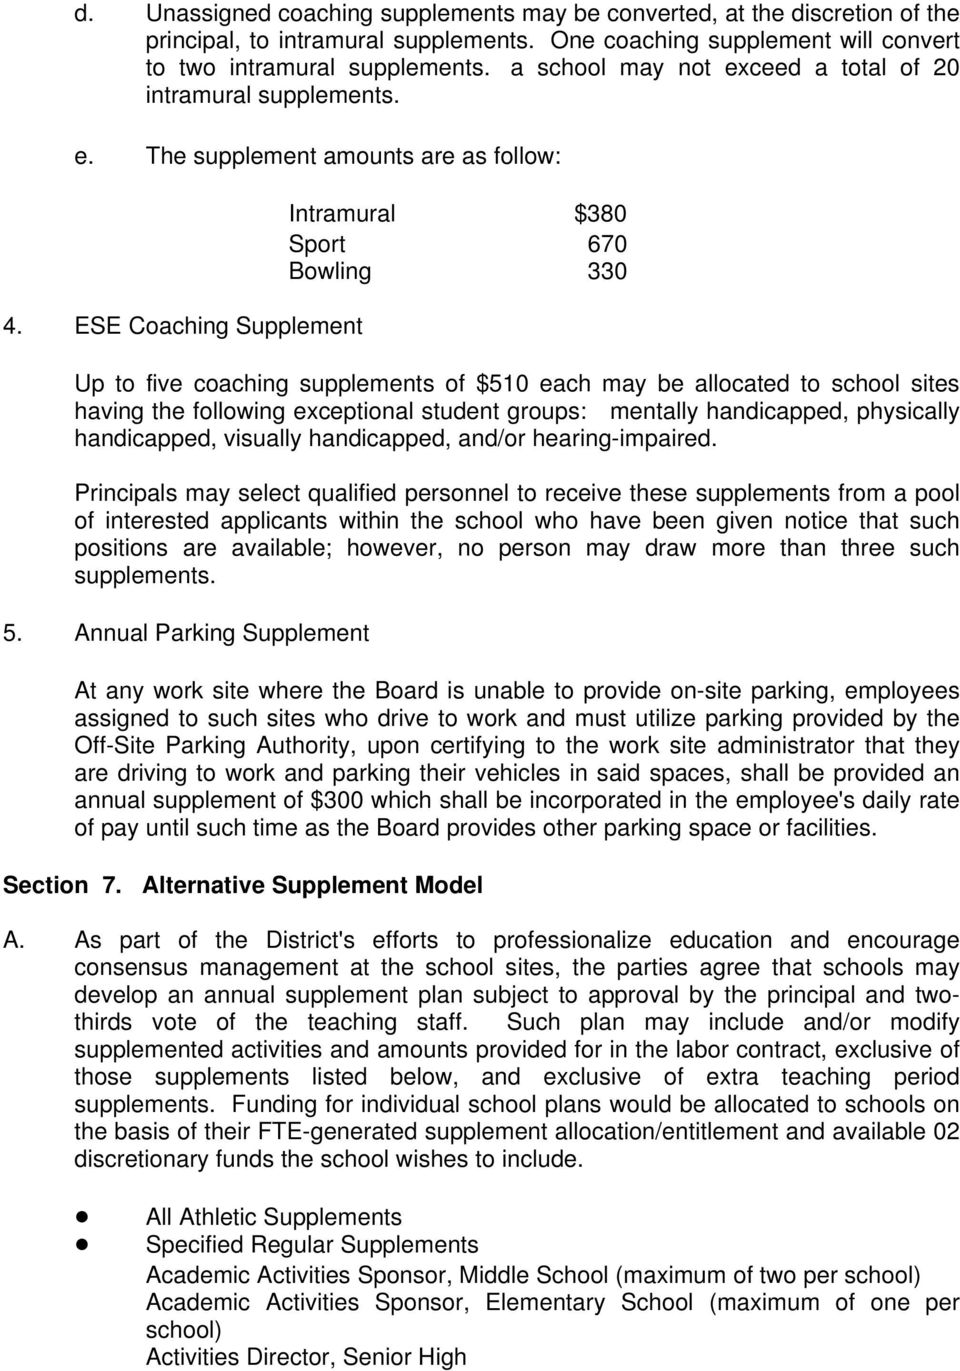 ESE Coaching Supplement Intramural $380 Sport 670 Bowling 330 Up to five coaching supplements of $510 each may be allocated to school sites having the following exceptional student groups: mentally